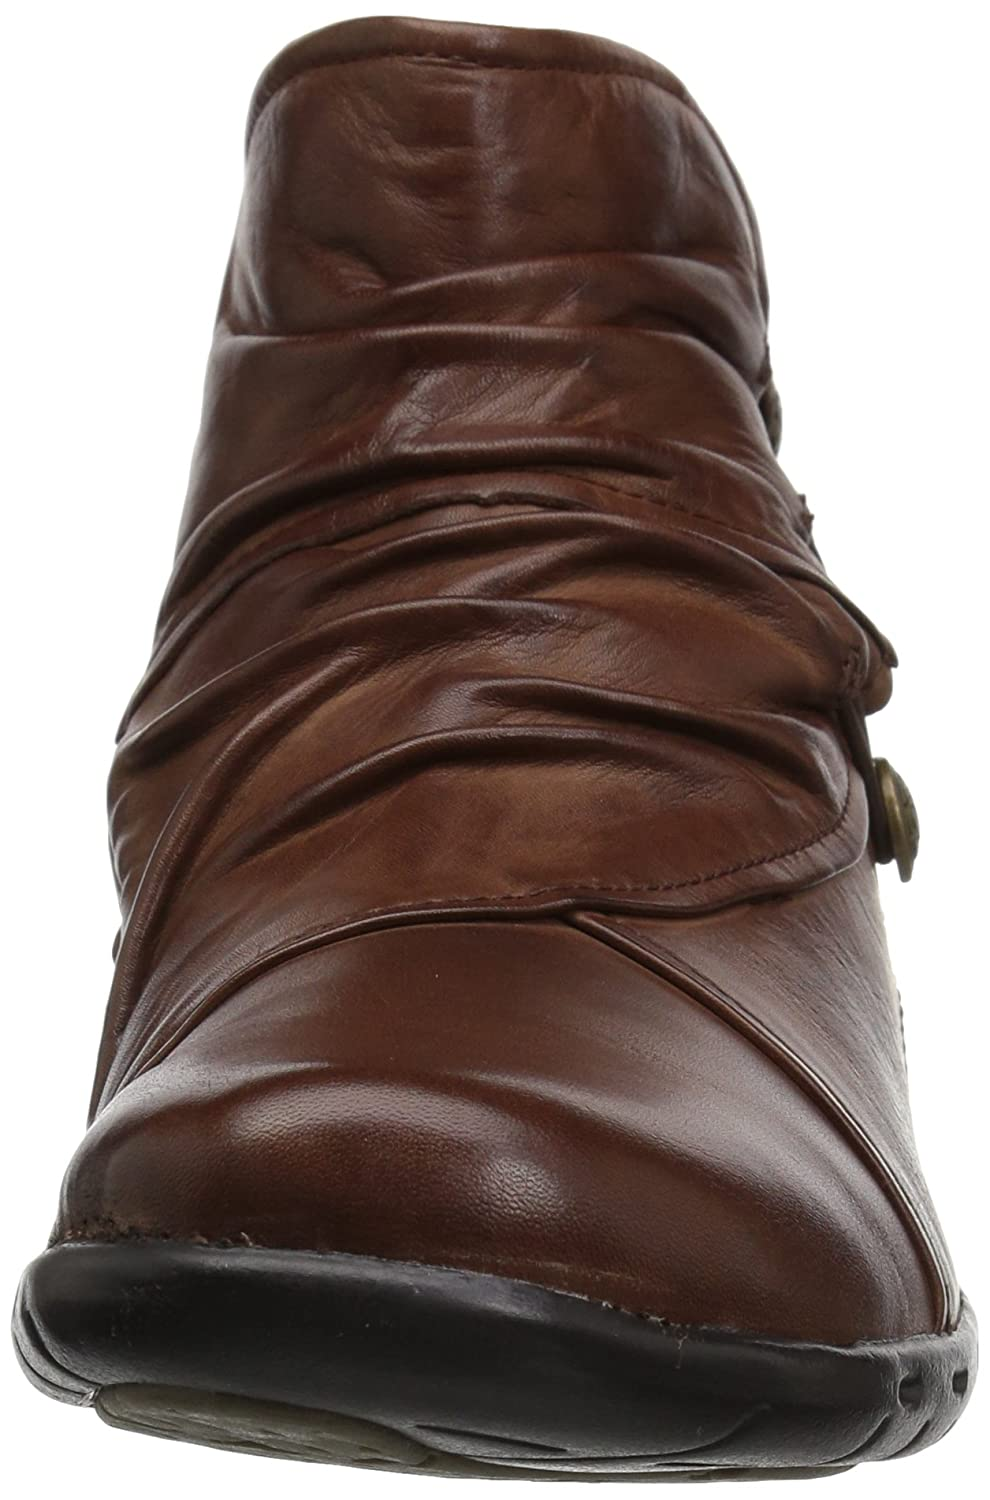 Cobb Hill Women's Penfield Boot Leather B01N4RQ2N1 7 N US|Almond Leather Boot 568a9b